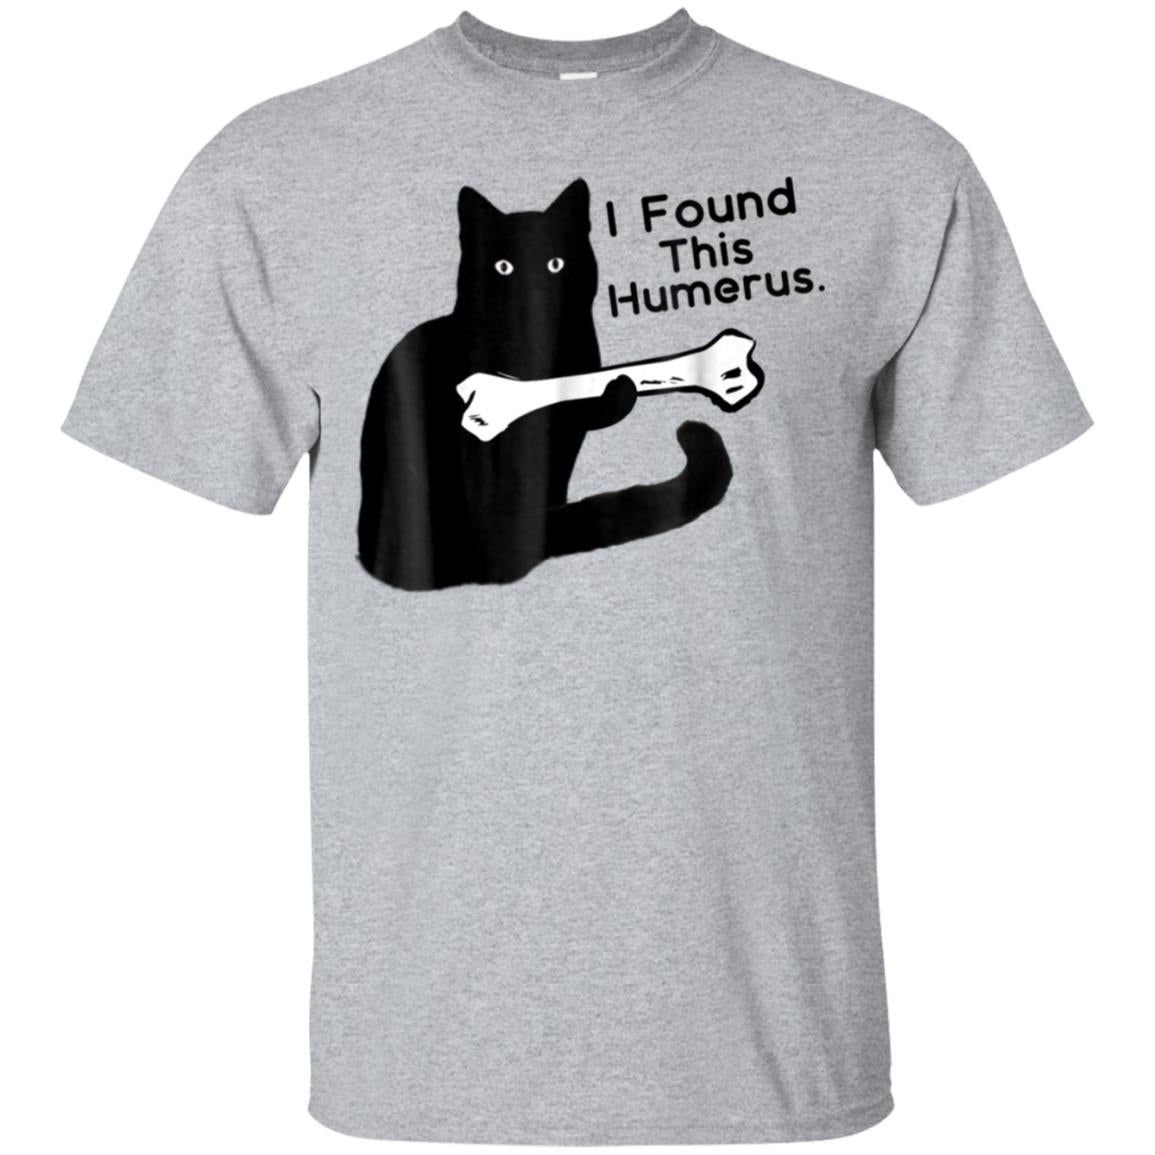 Funny T-Shirt I Found This Humerus cats- Humourous Pun 99promocode